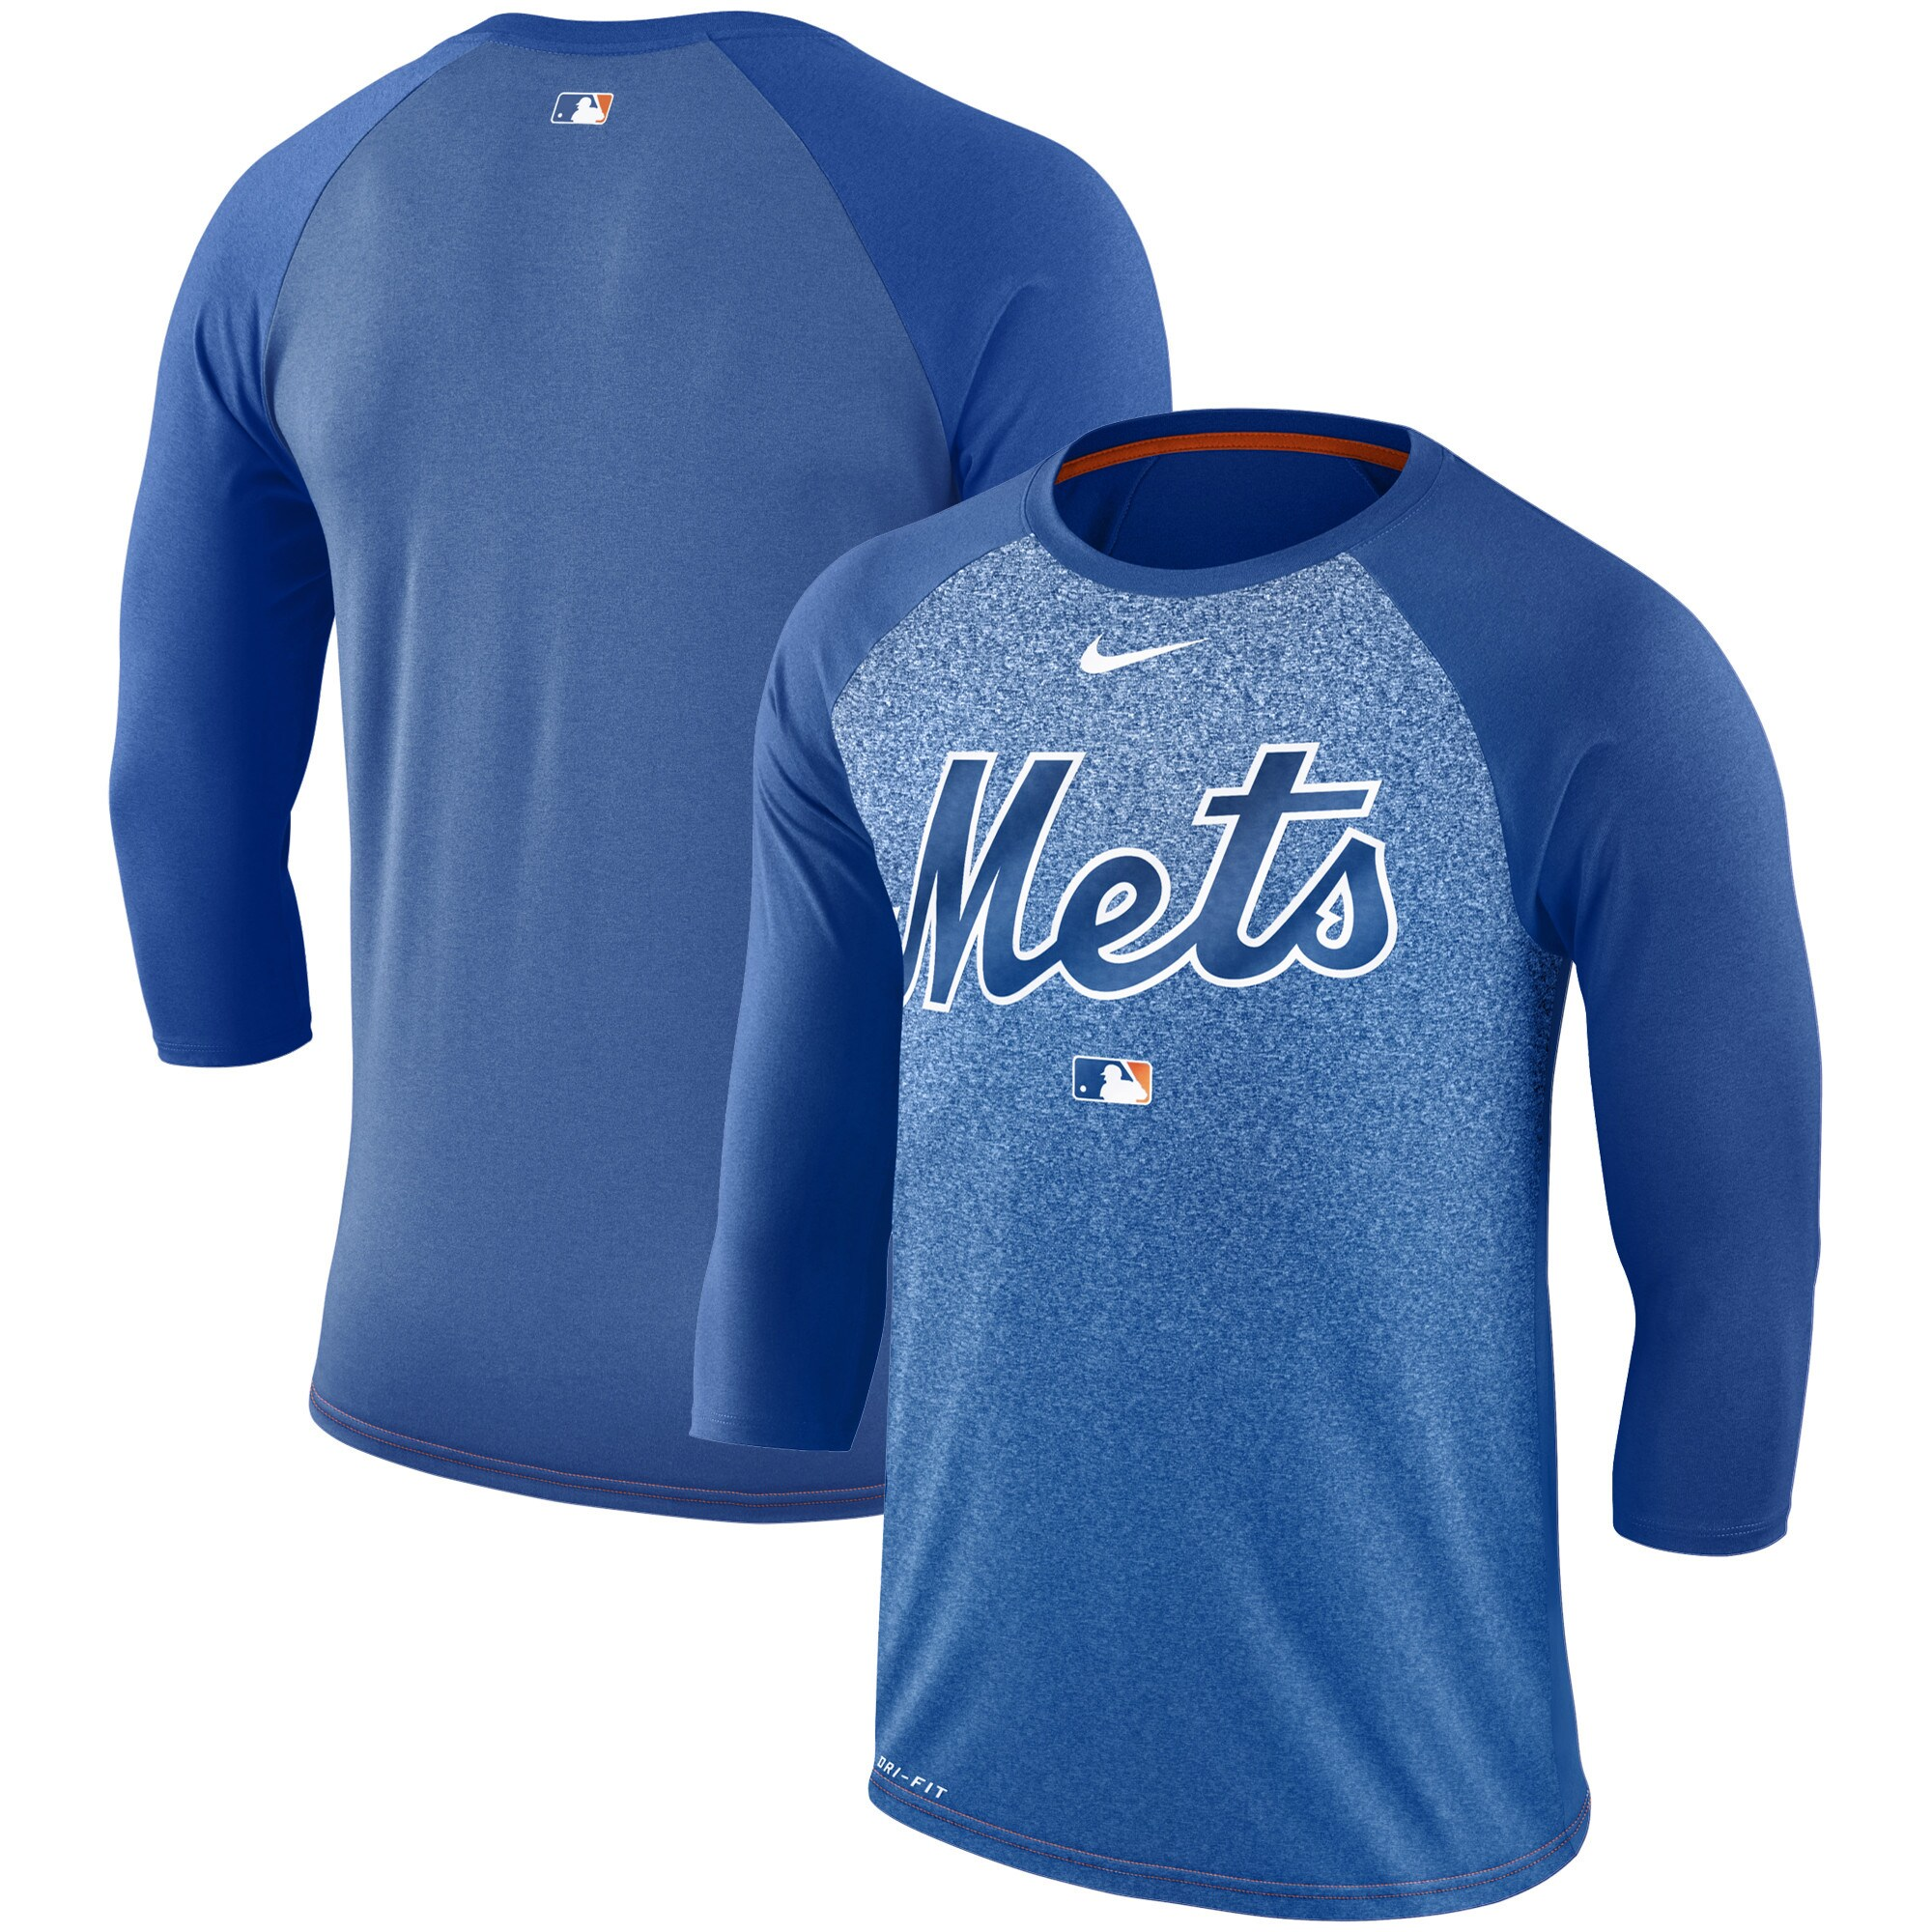 New York Mets Nike Authentic Collection Legend 3/4-Sleeve Raglan Performance T-Shirt - Royal